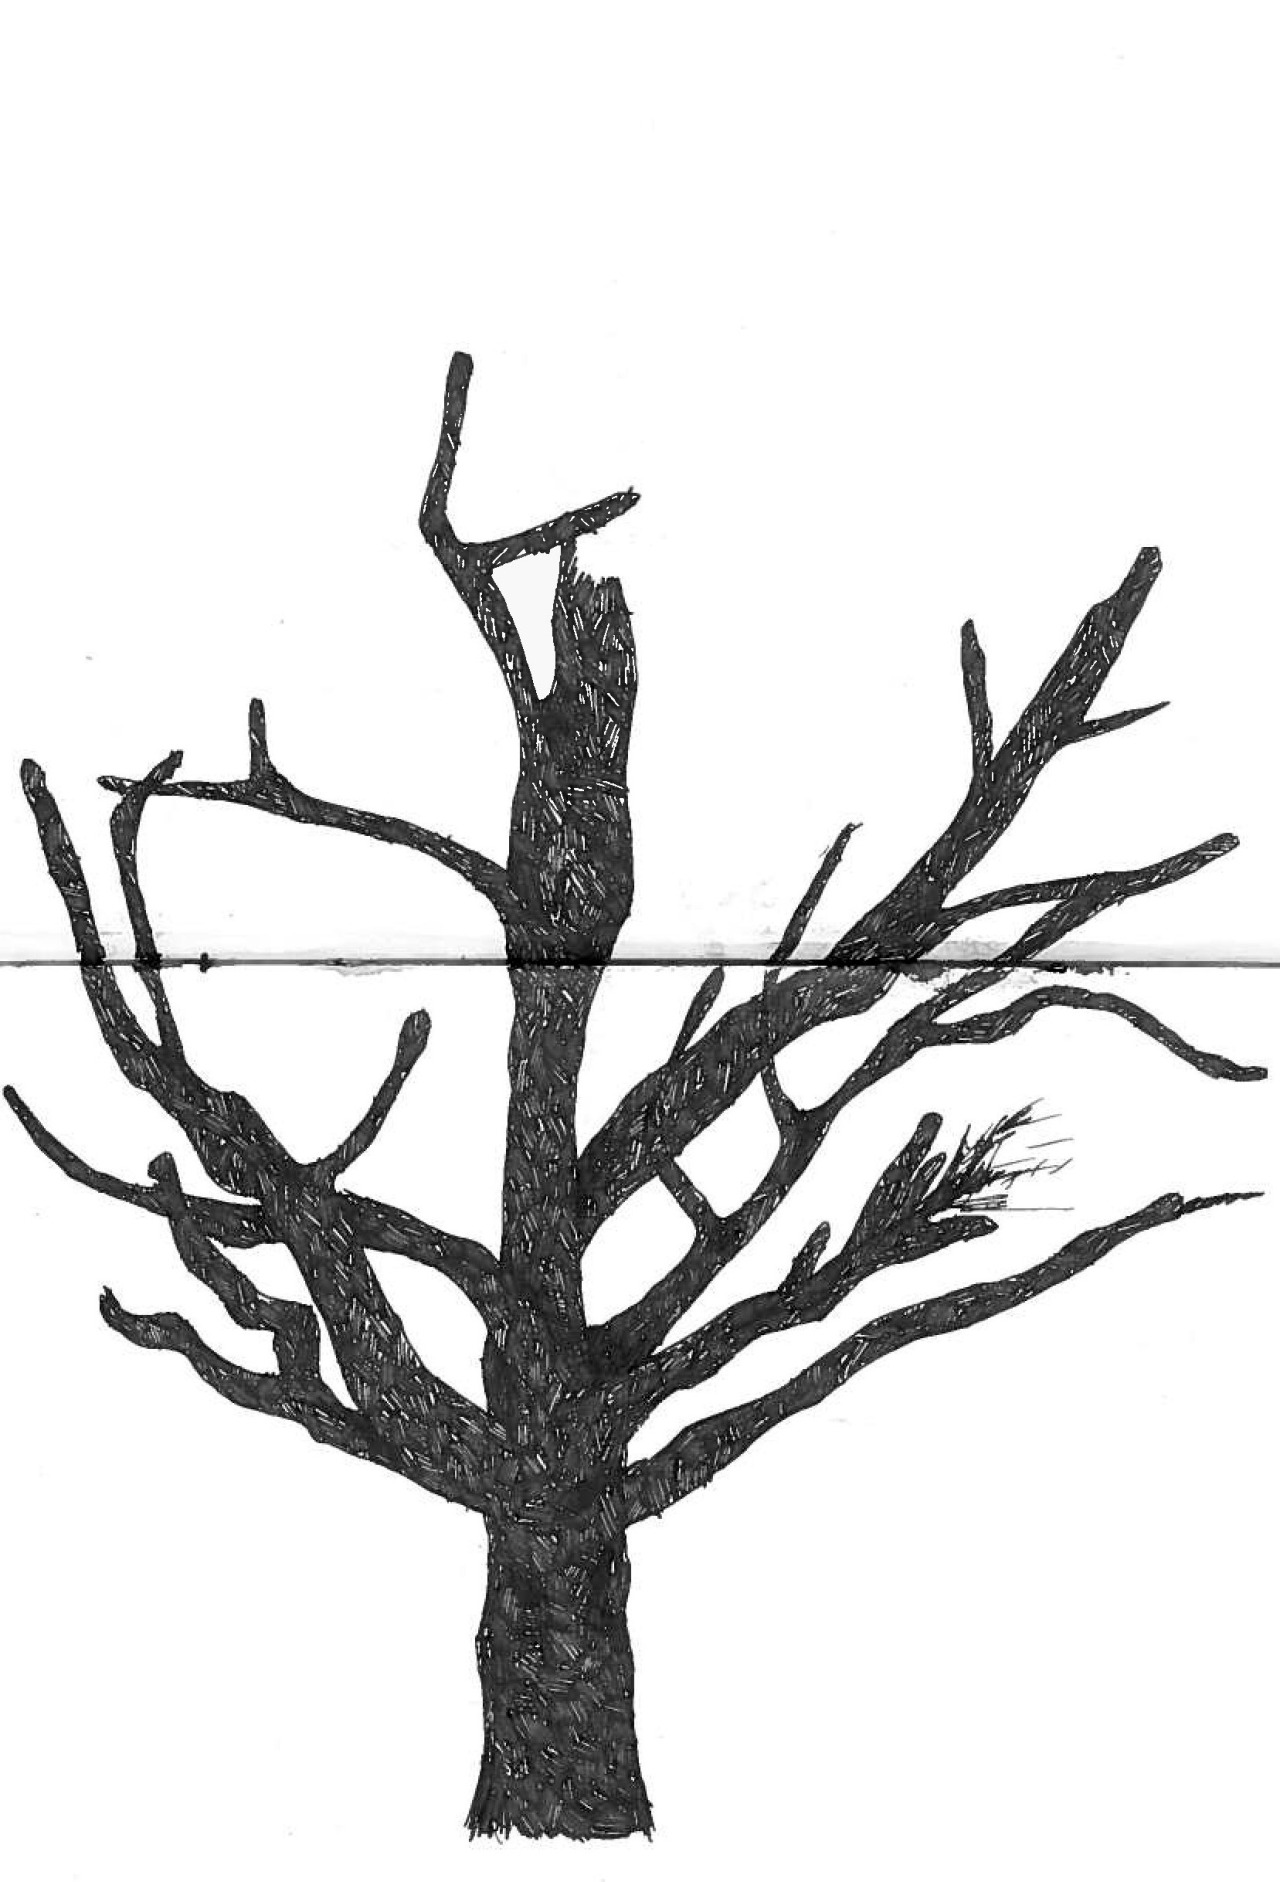 1280x1882 It Me !, I Started Drawing This Tree In My Frees